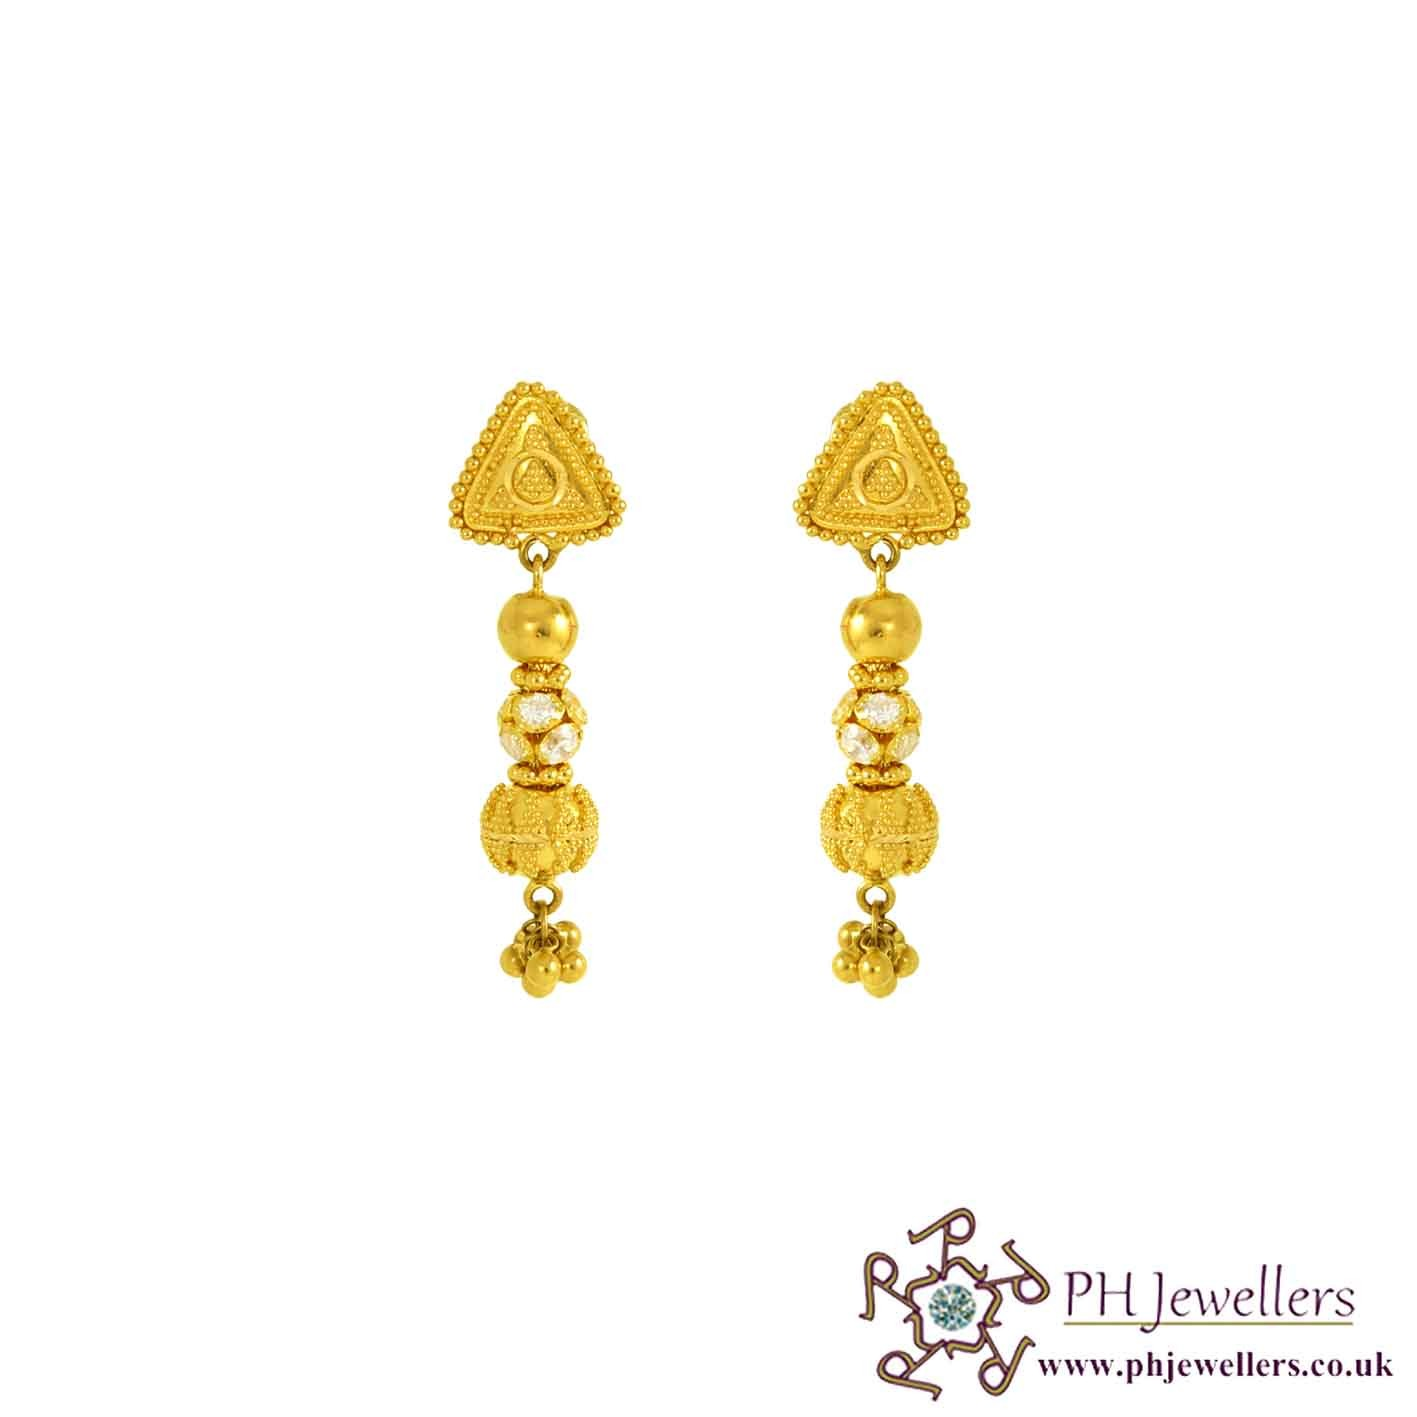 pin jewellery gold hd images earrings full wallpaper design pinterest